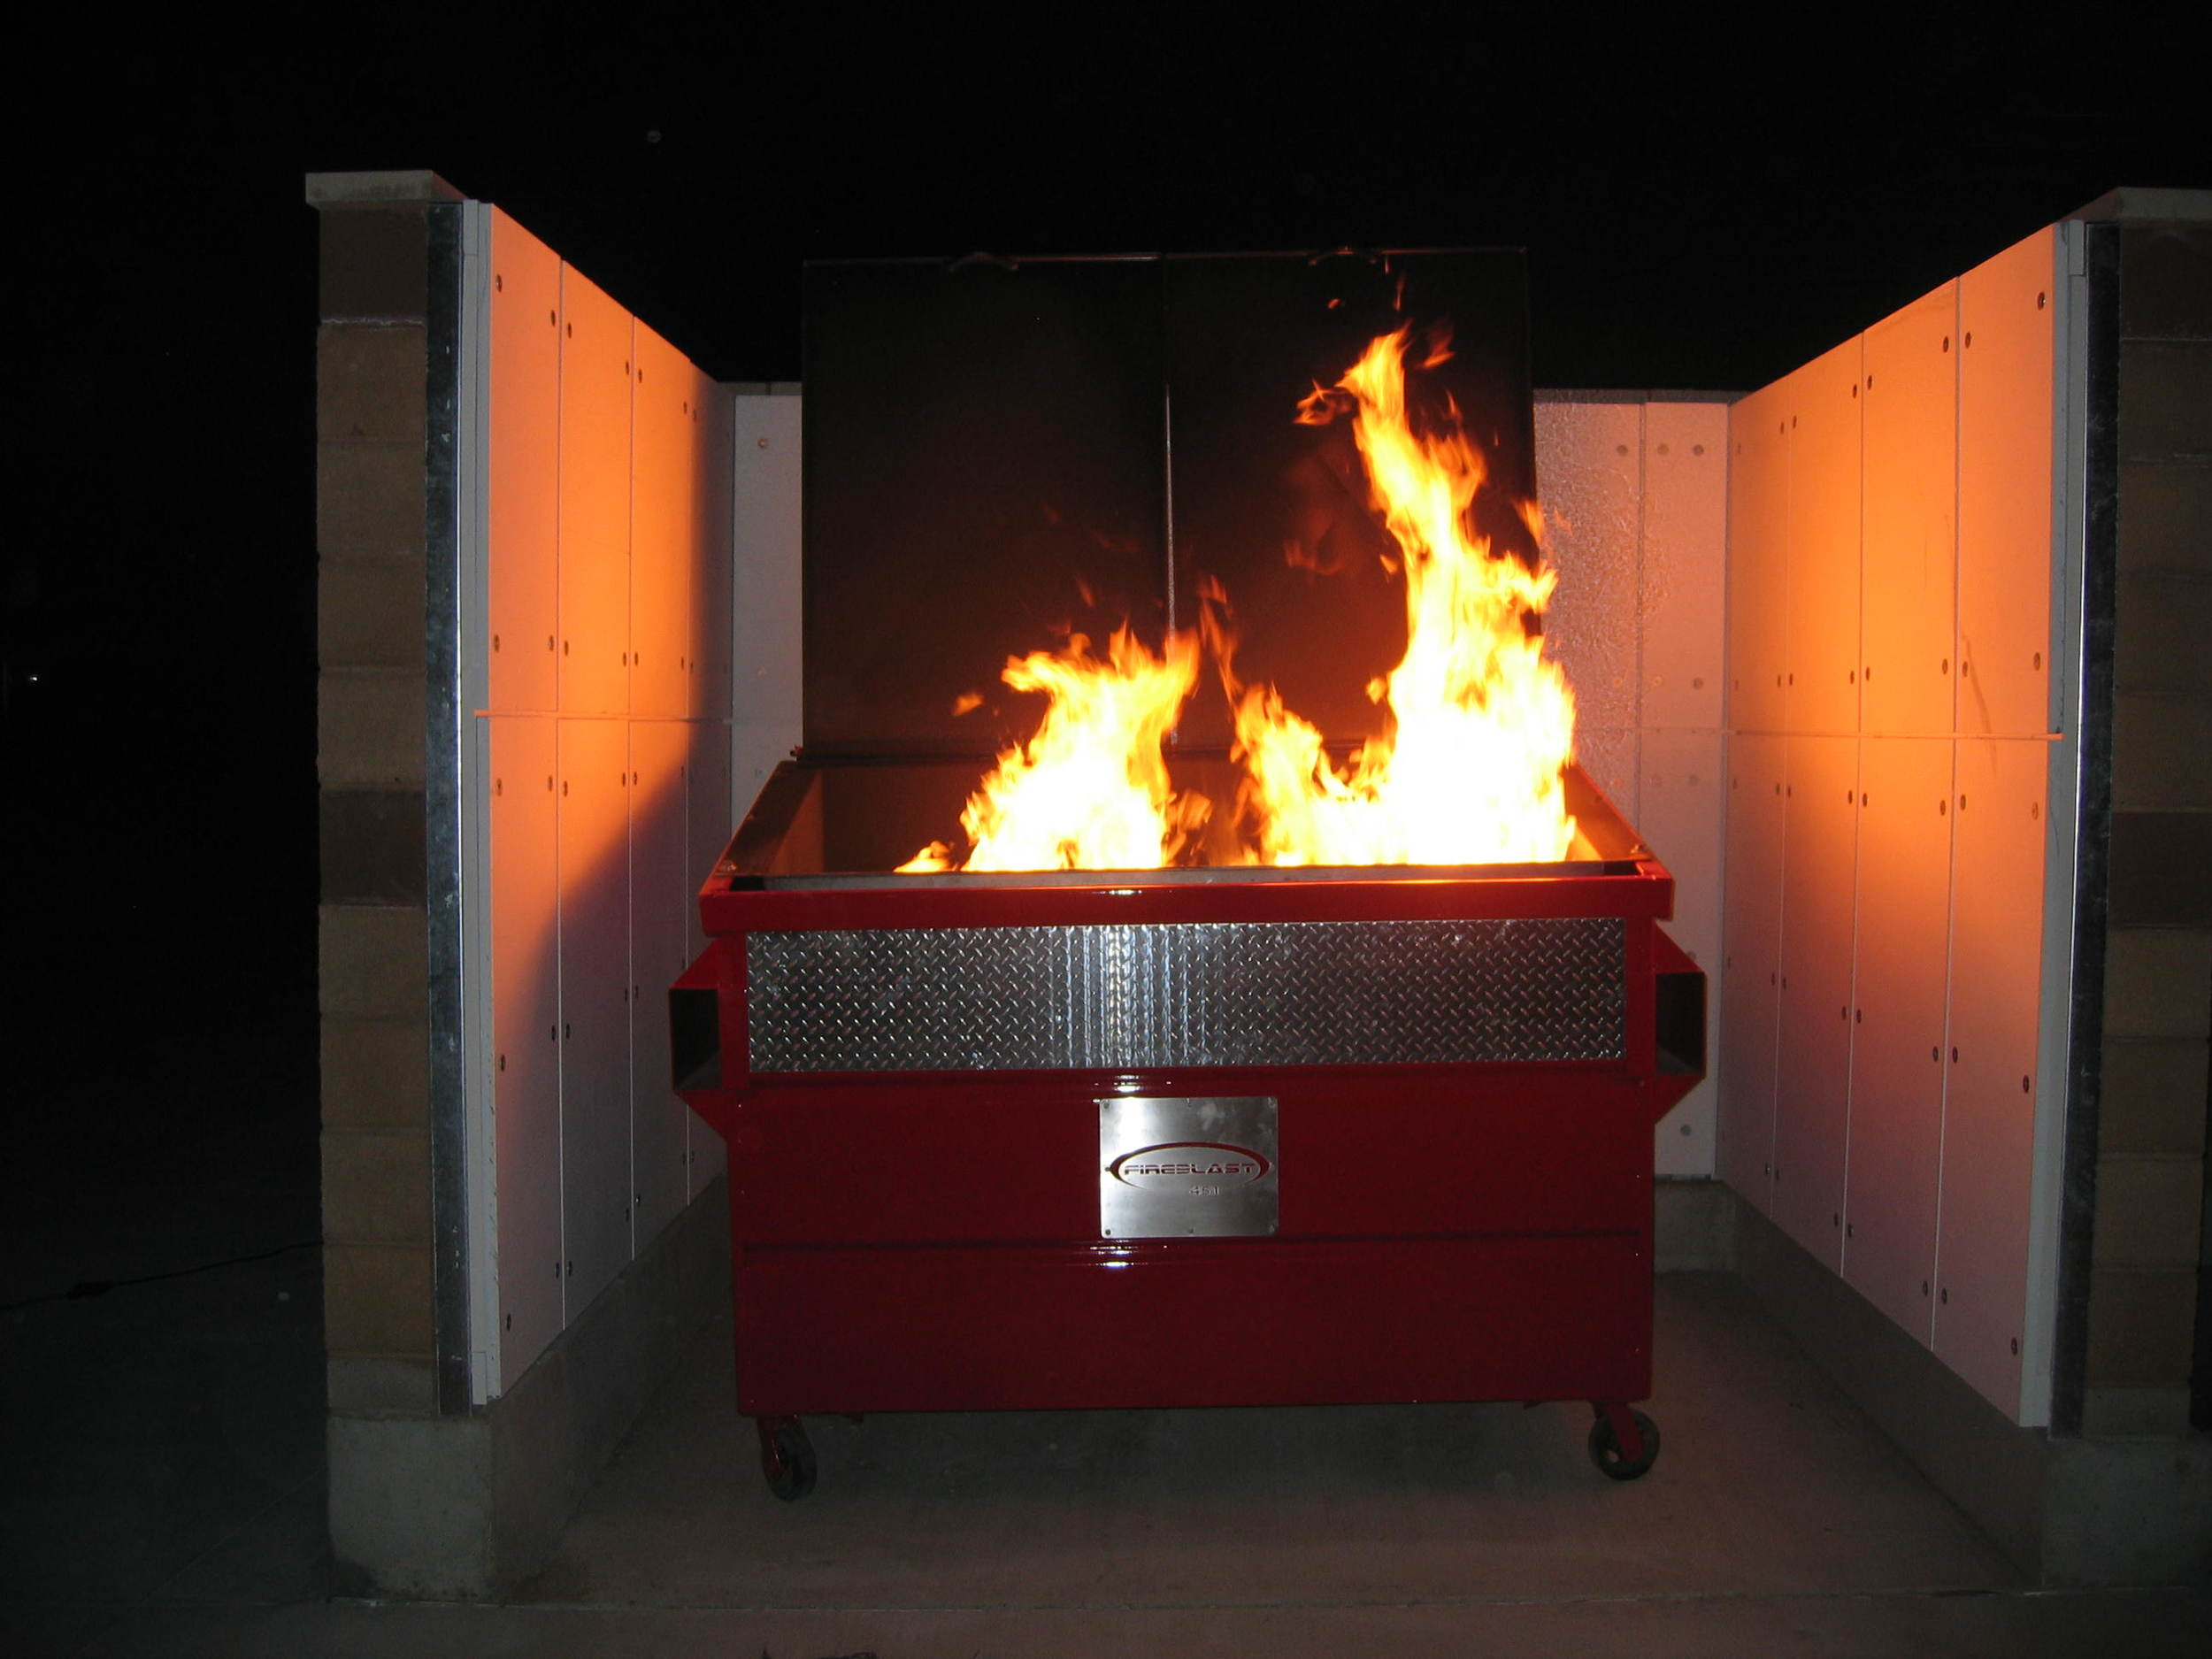 The Chicago Fire designated player dumpster fire, in better days.